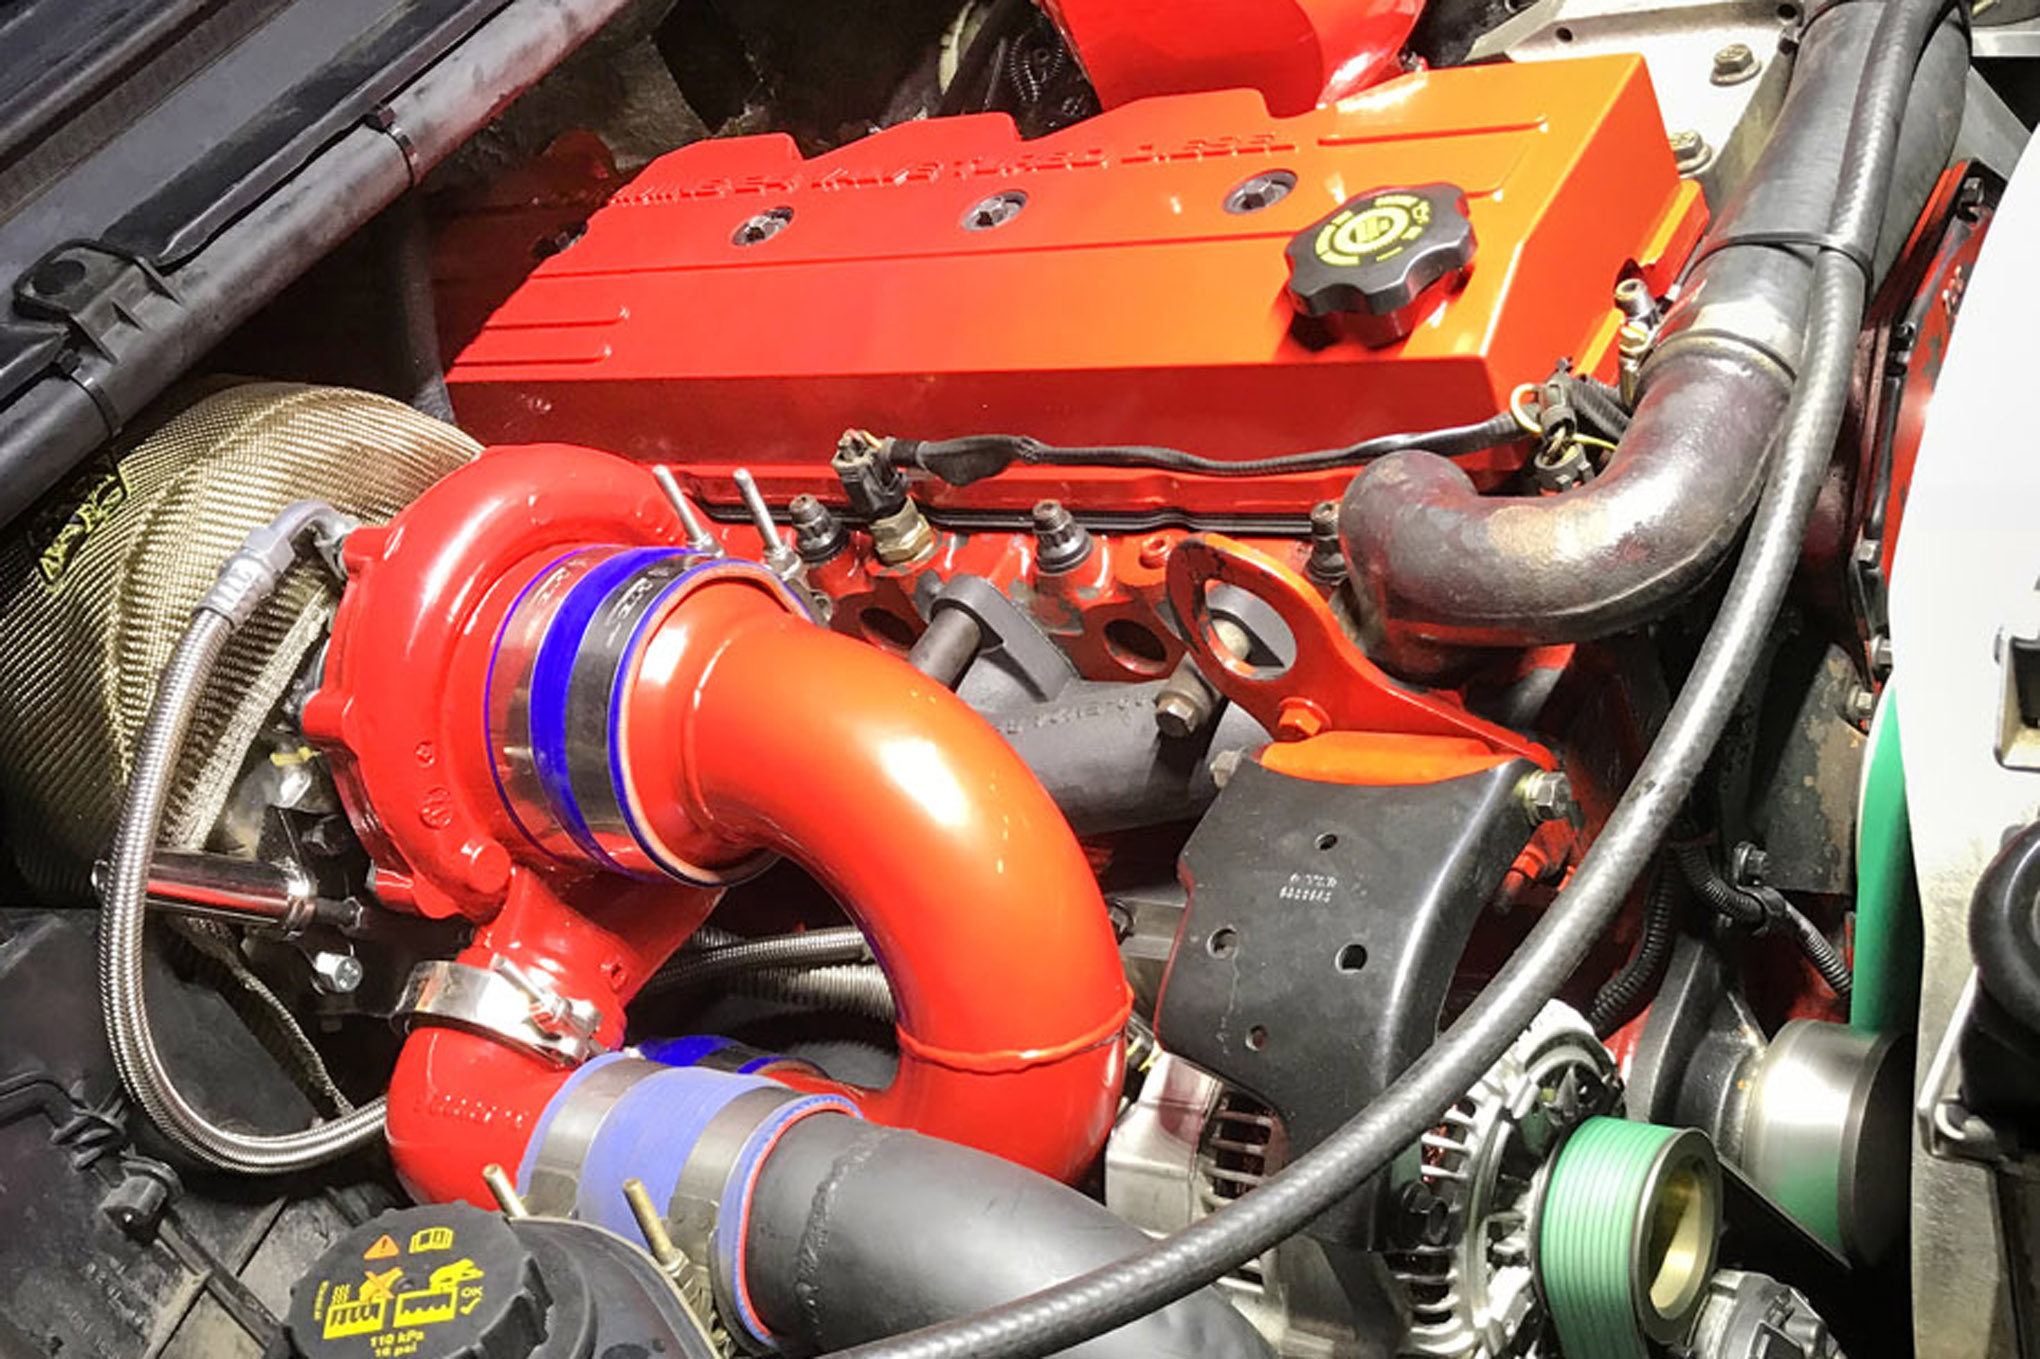 compound turbos bring new life to a 5 9l cummins engine  nissan frontier engine diagram turbocharge #8